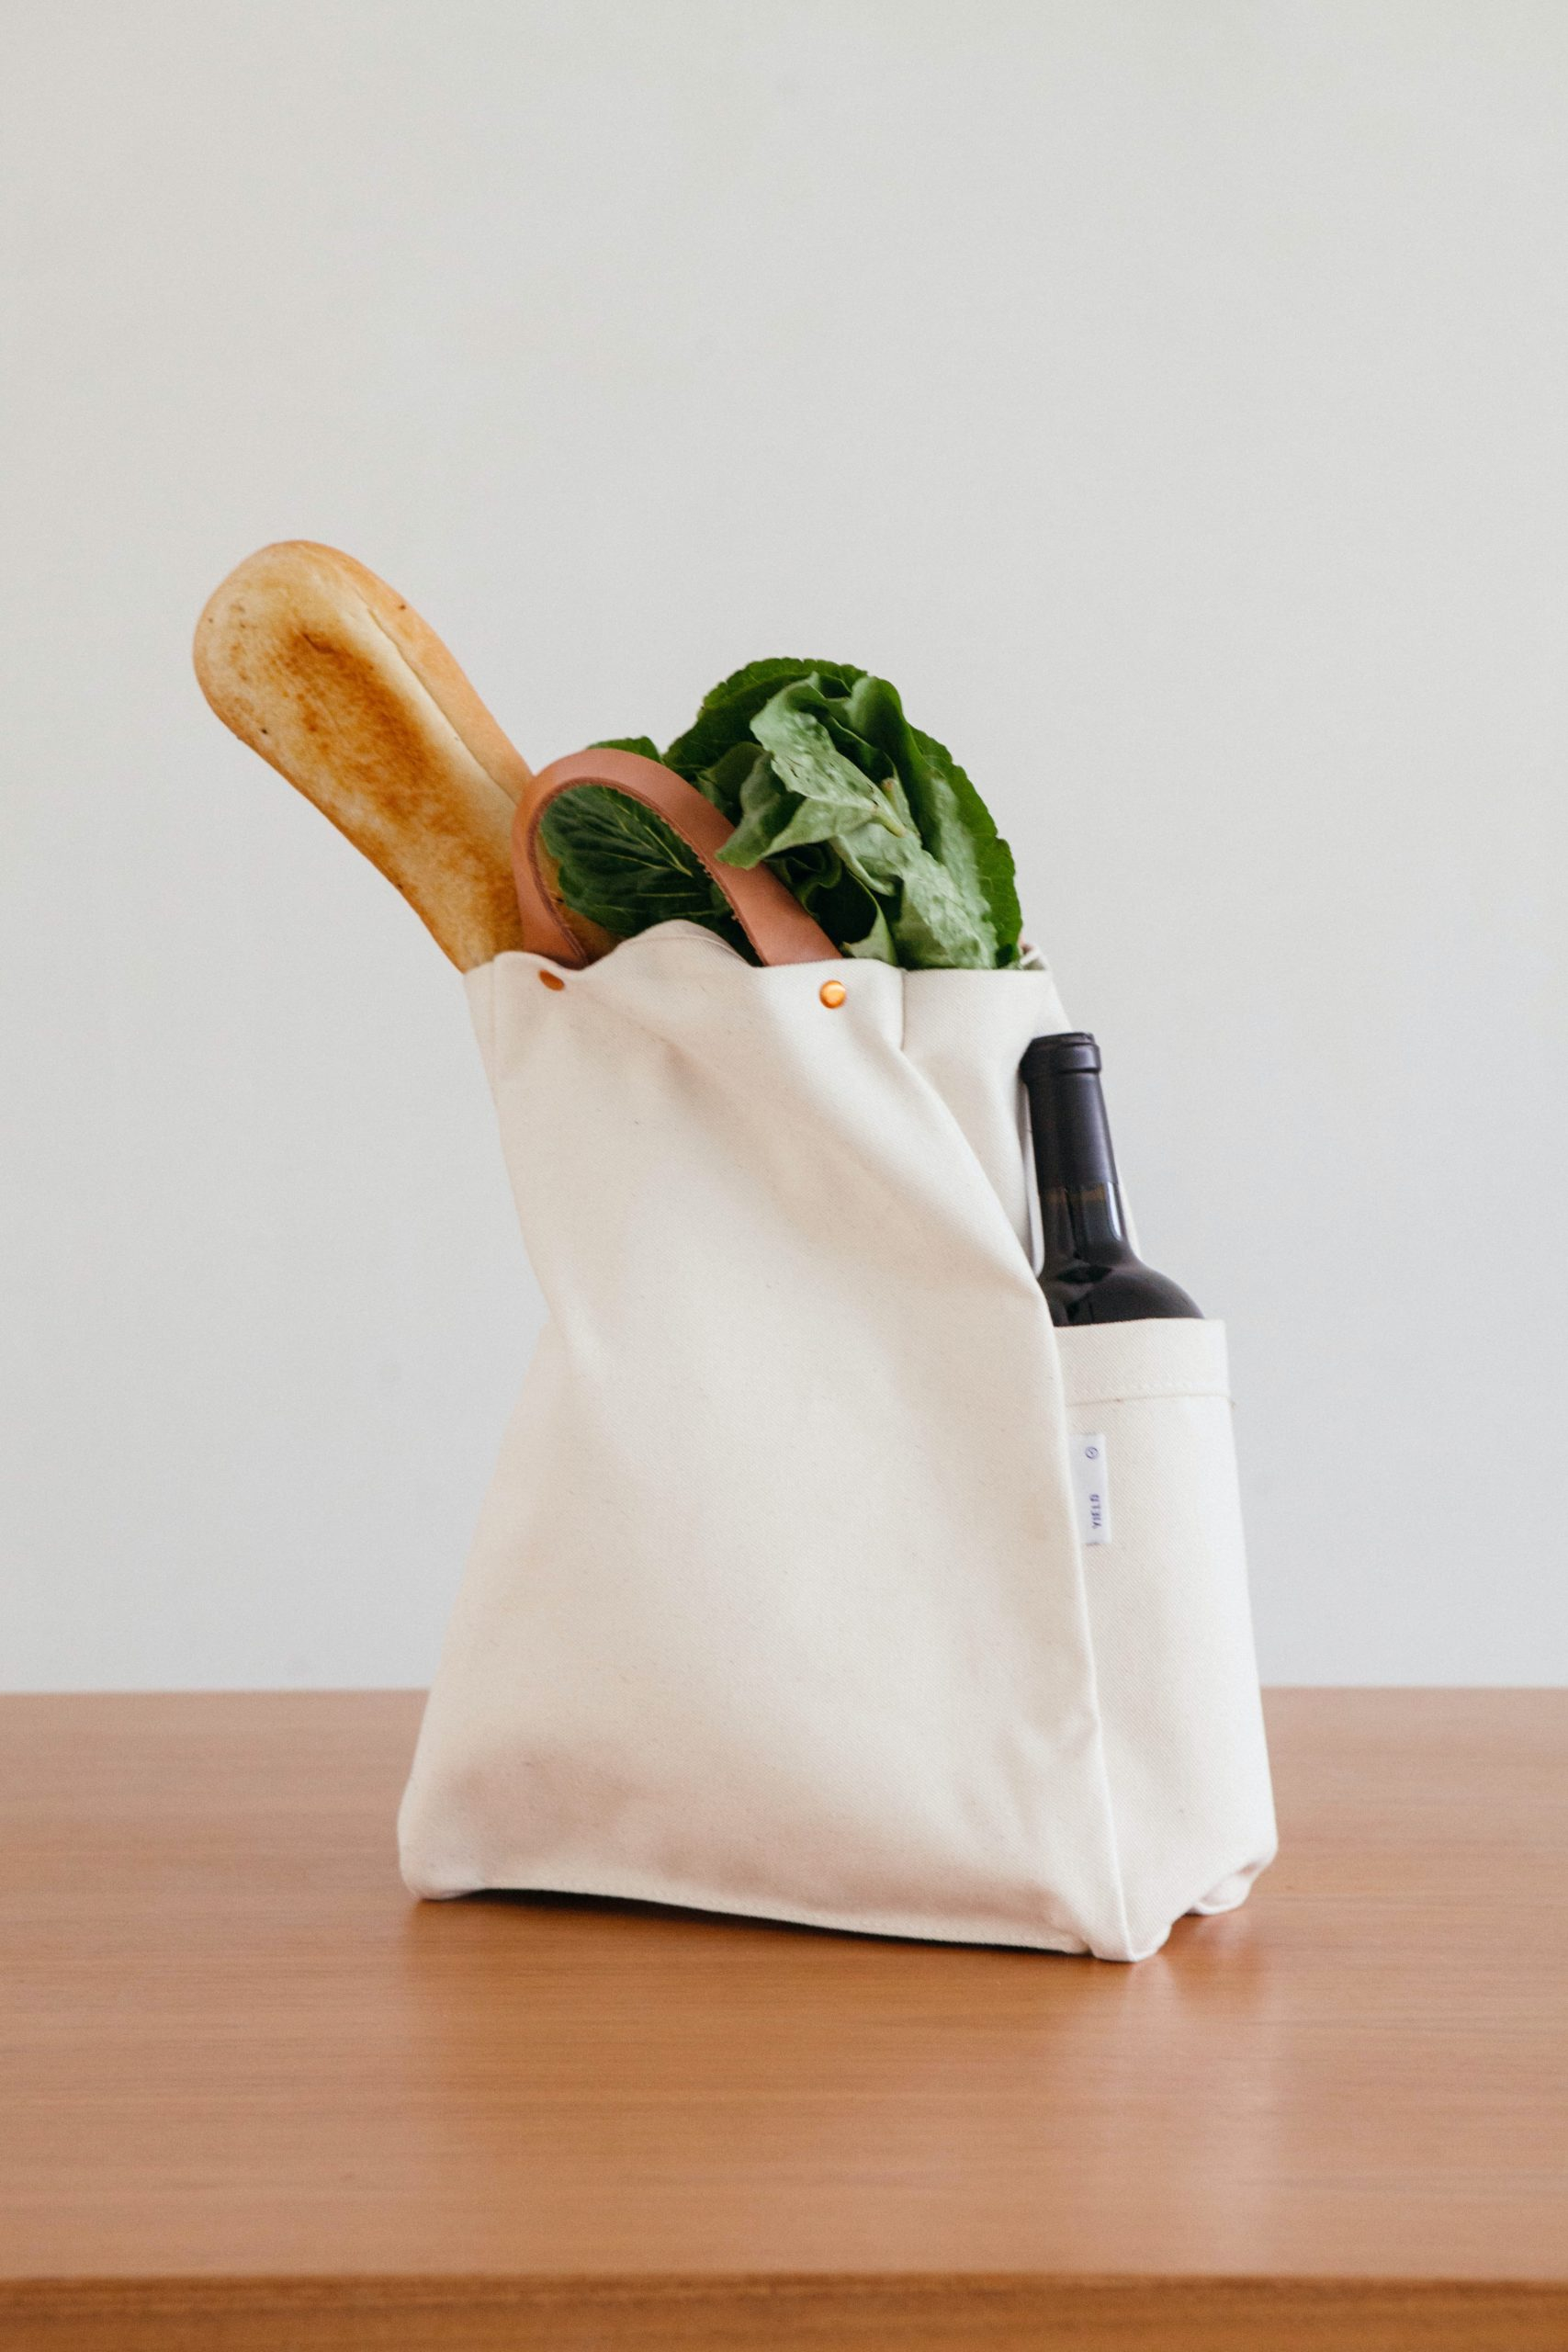 tote bag with groceries inside